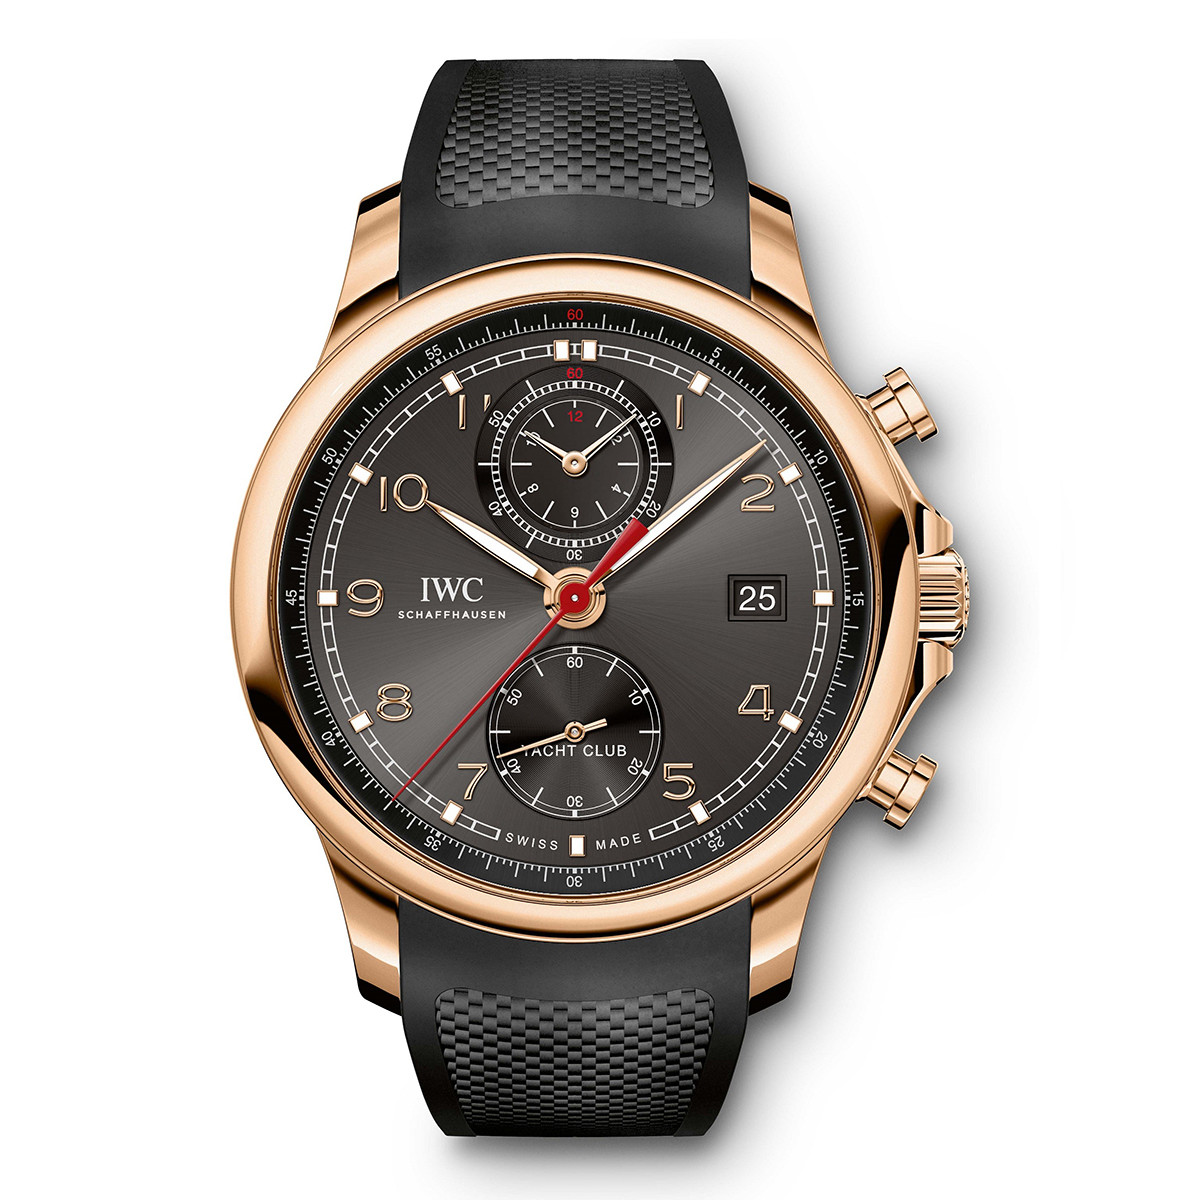 Portugieser Yacht Club Chronograph Rose Gold (IW390505)